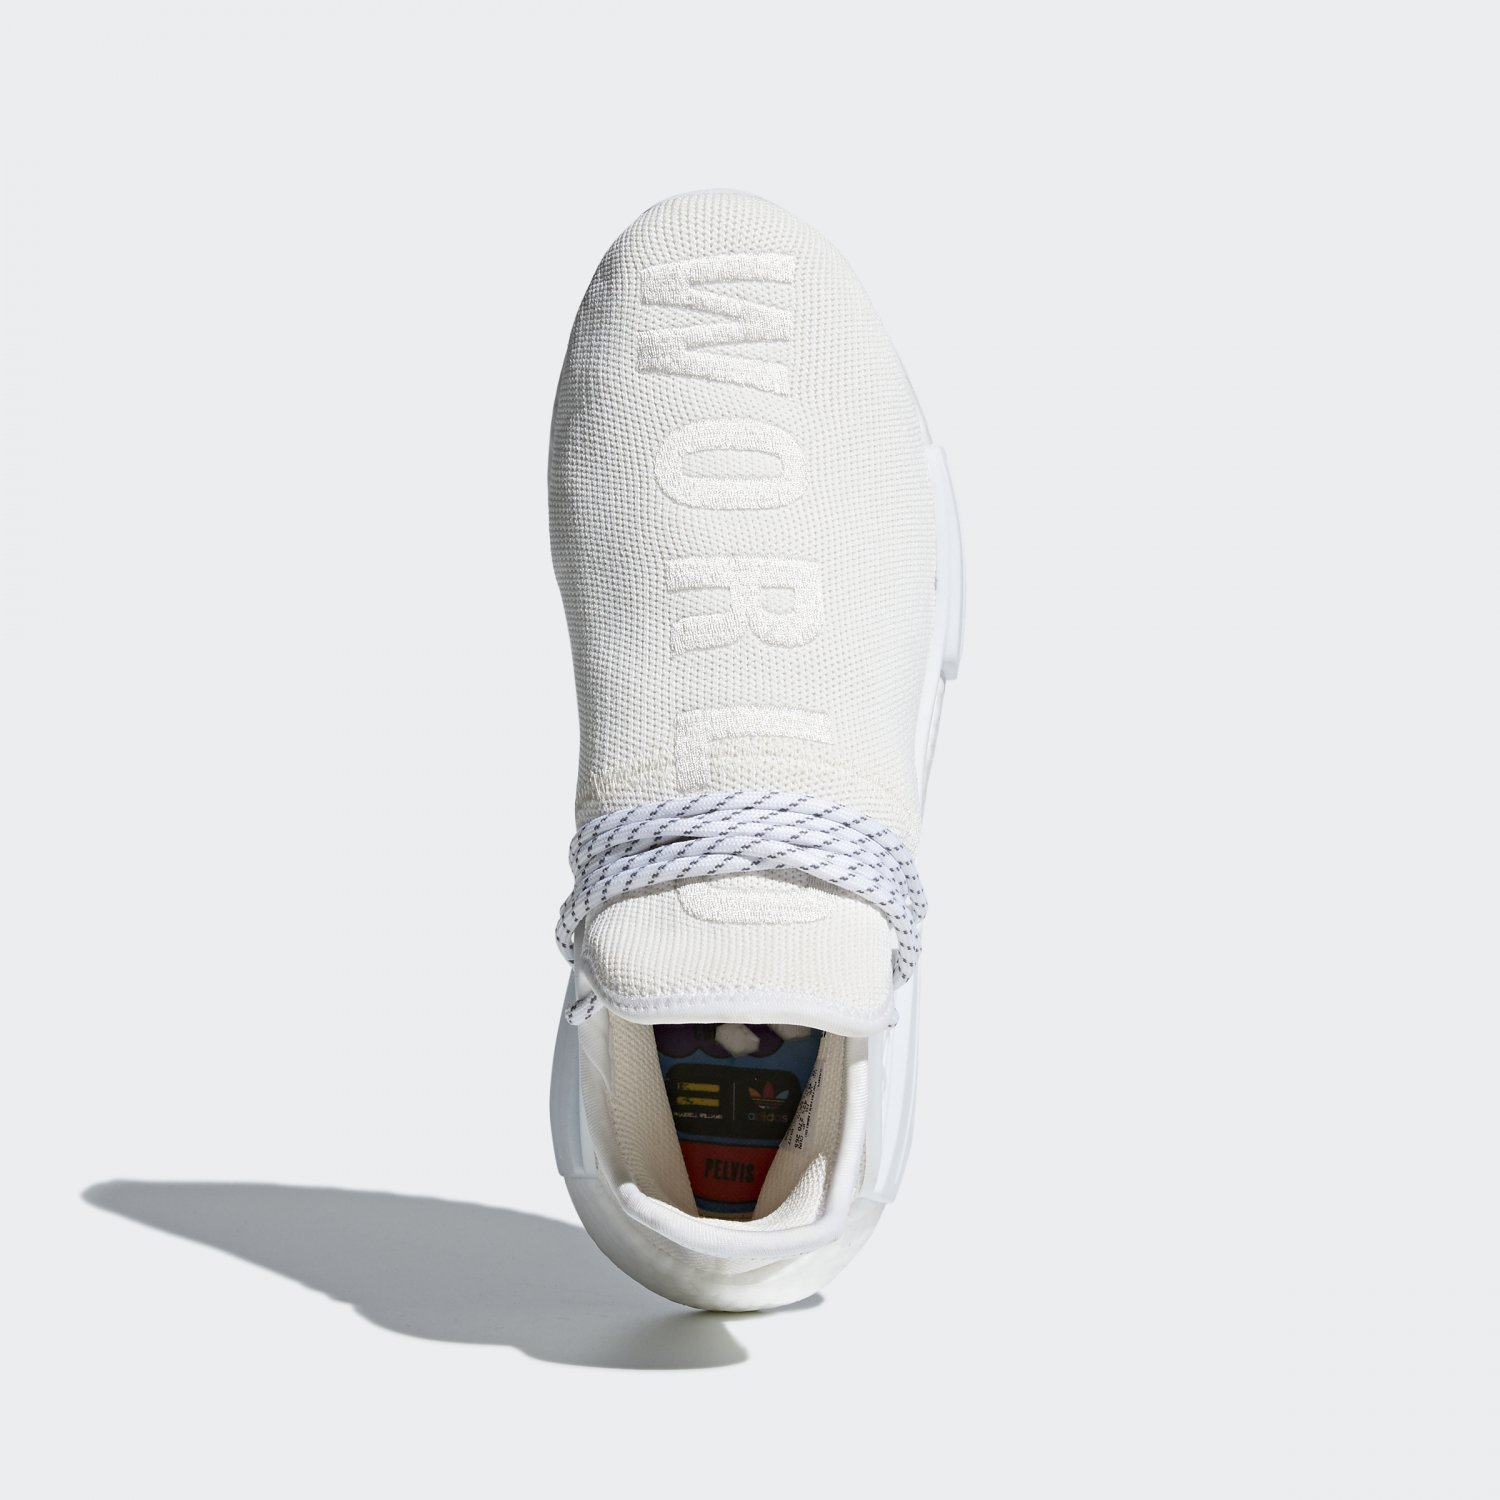 pharrell-williams-adidas-nmd-hu-blank-canvas-ac7031-release-20180223